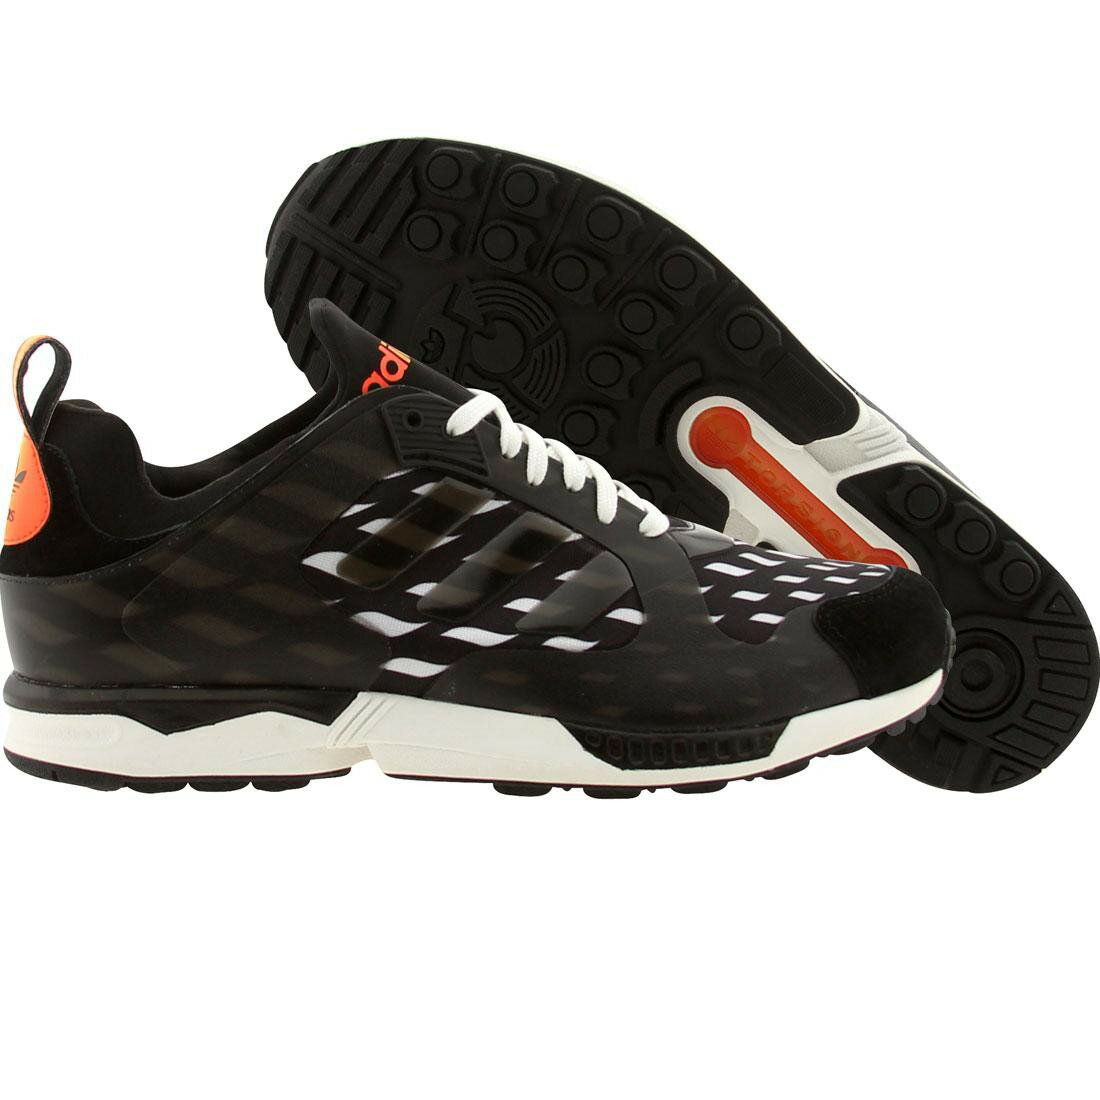 メンズ靴, スニーカー  ADIDAS MEN ZX 5000 RSPN WC WORLD CUP BATTLE PACK BLACK CBLACK WHTVAP FTWW